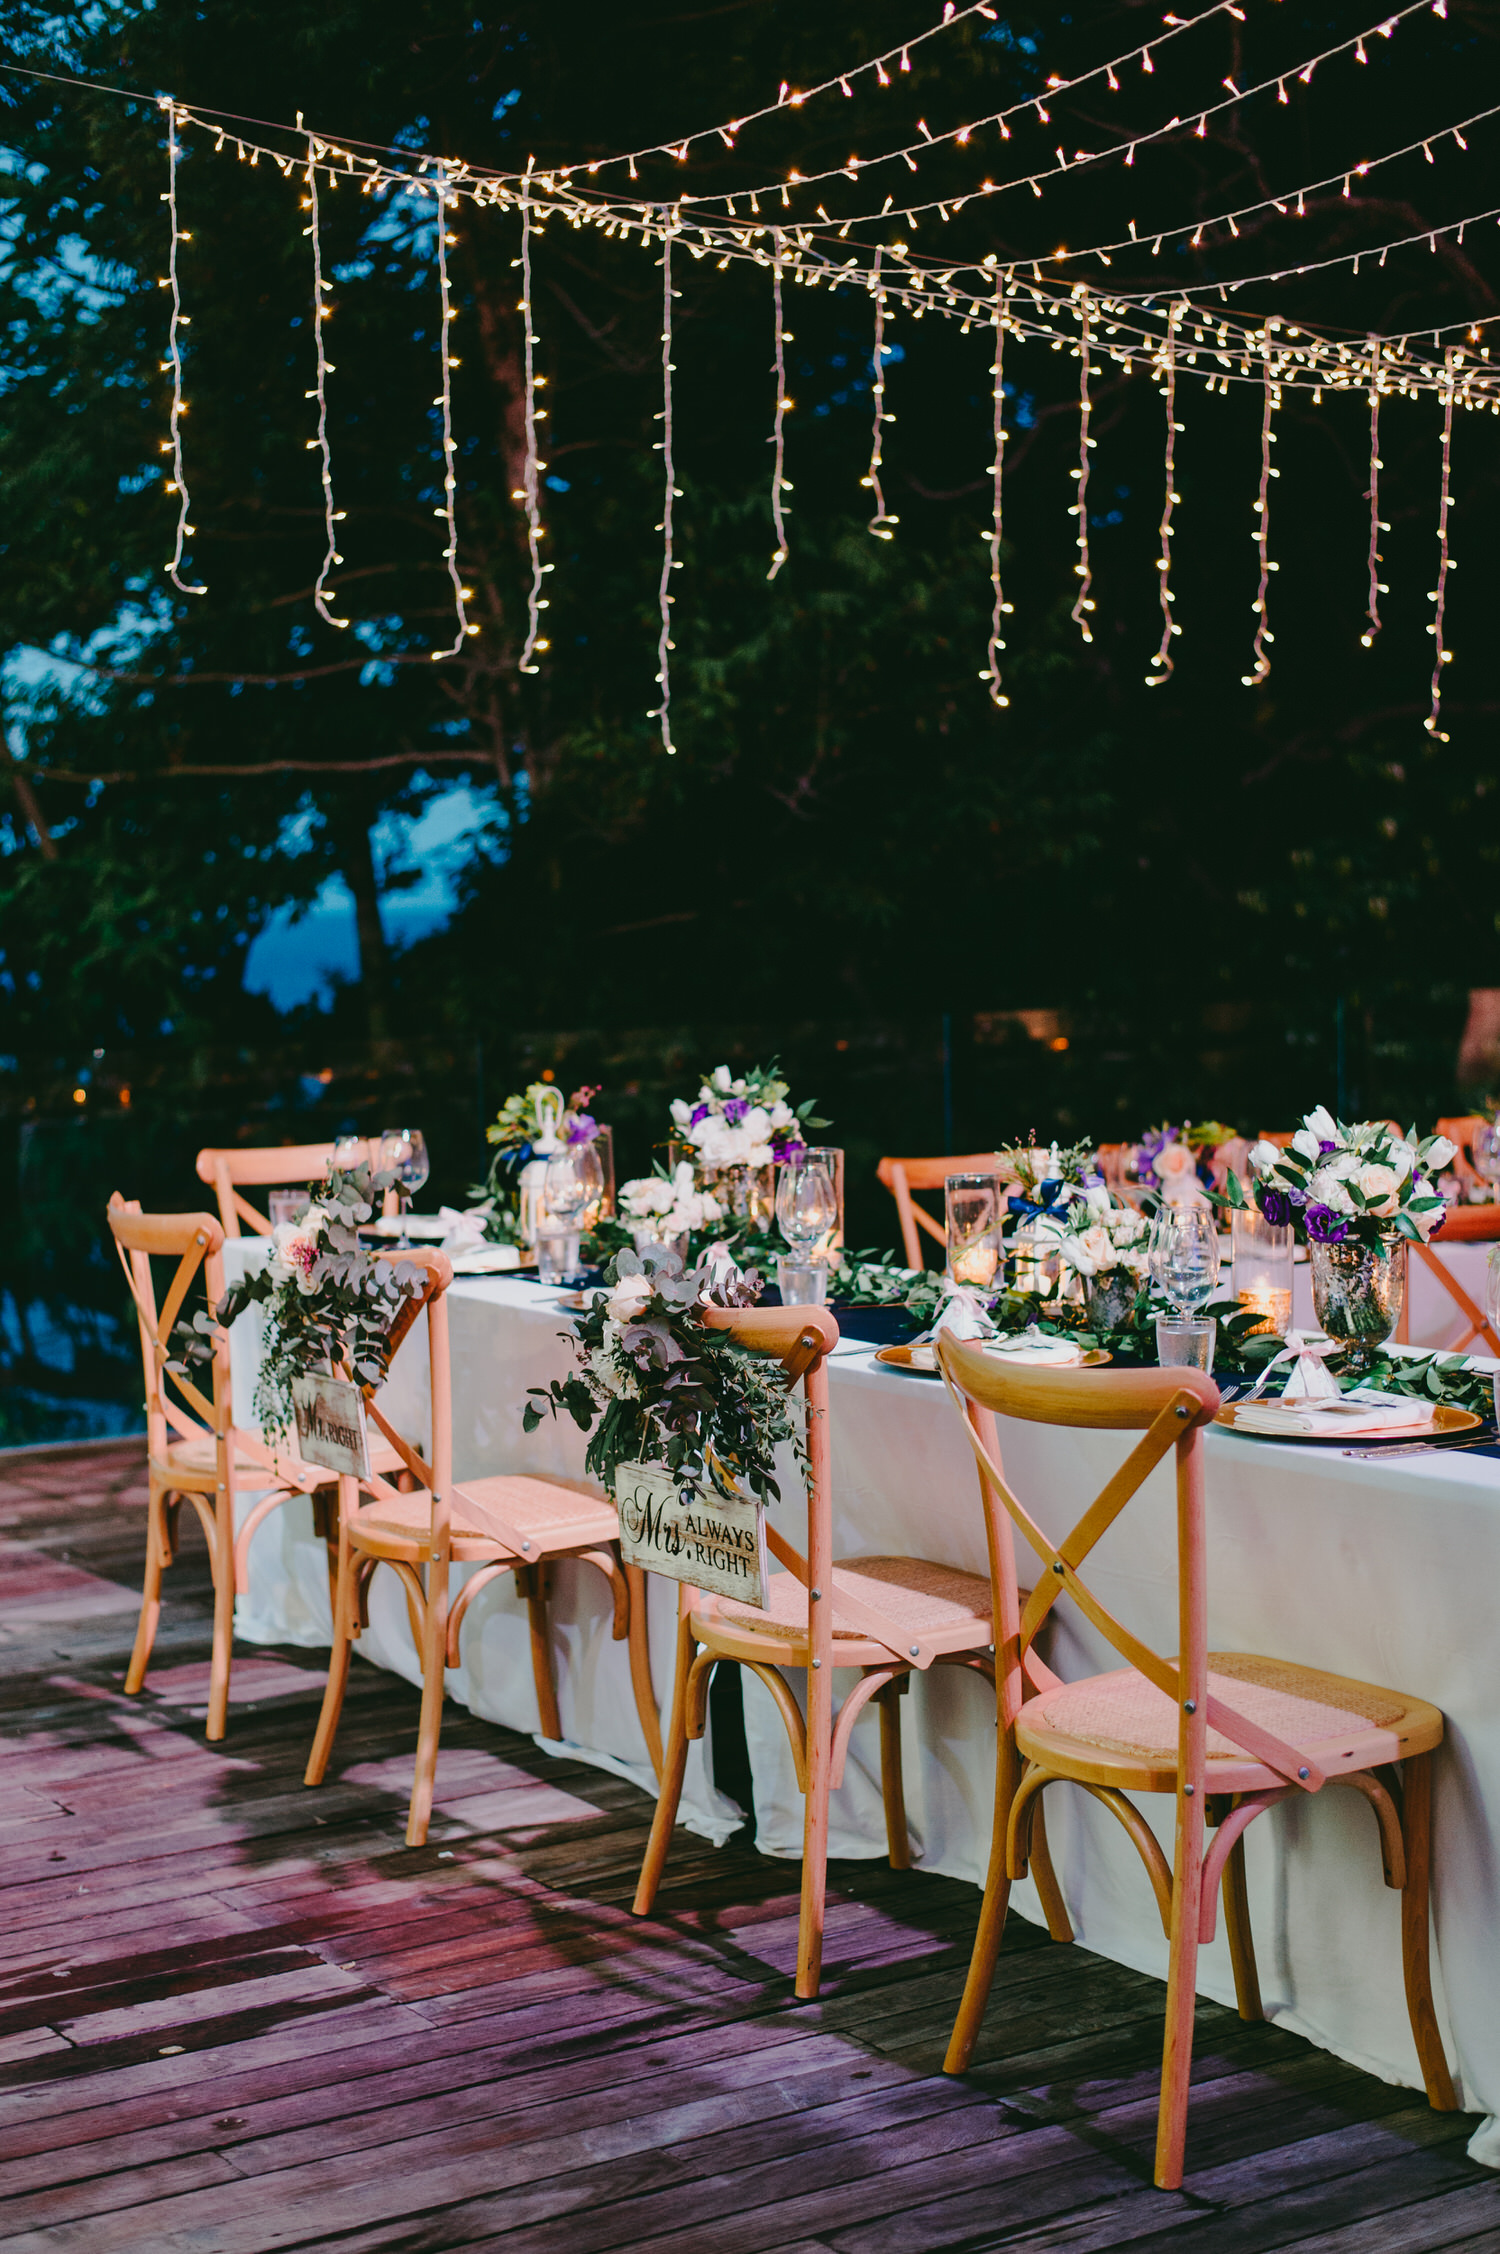 phuket wedding-diktatphotography-alex&andy wedding-121